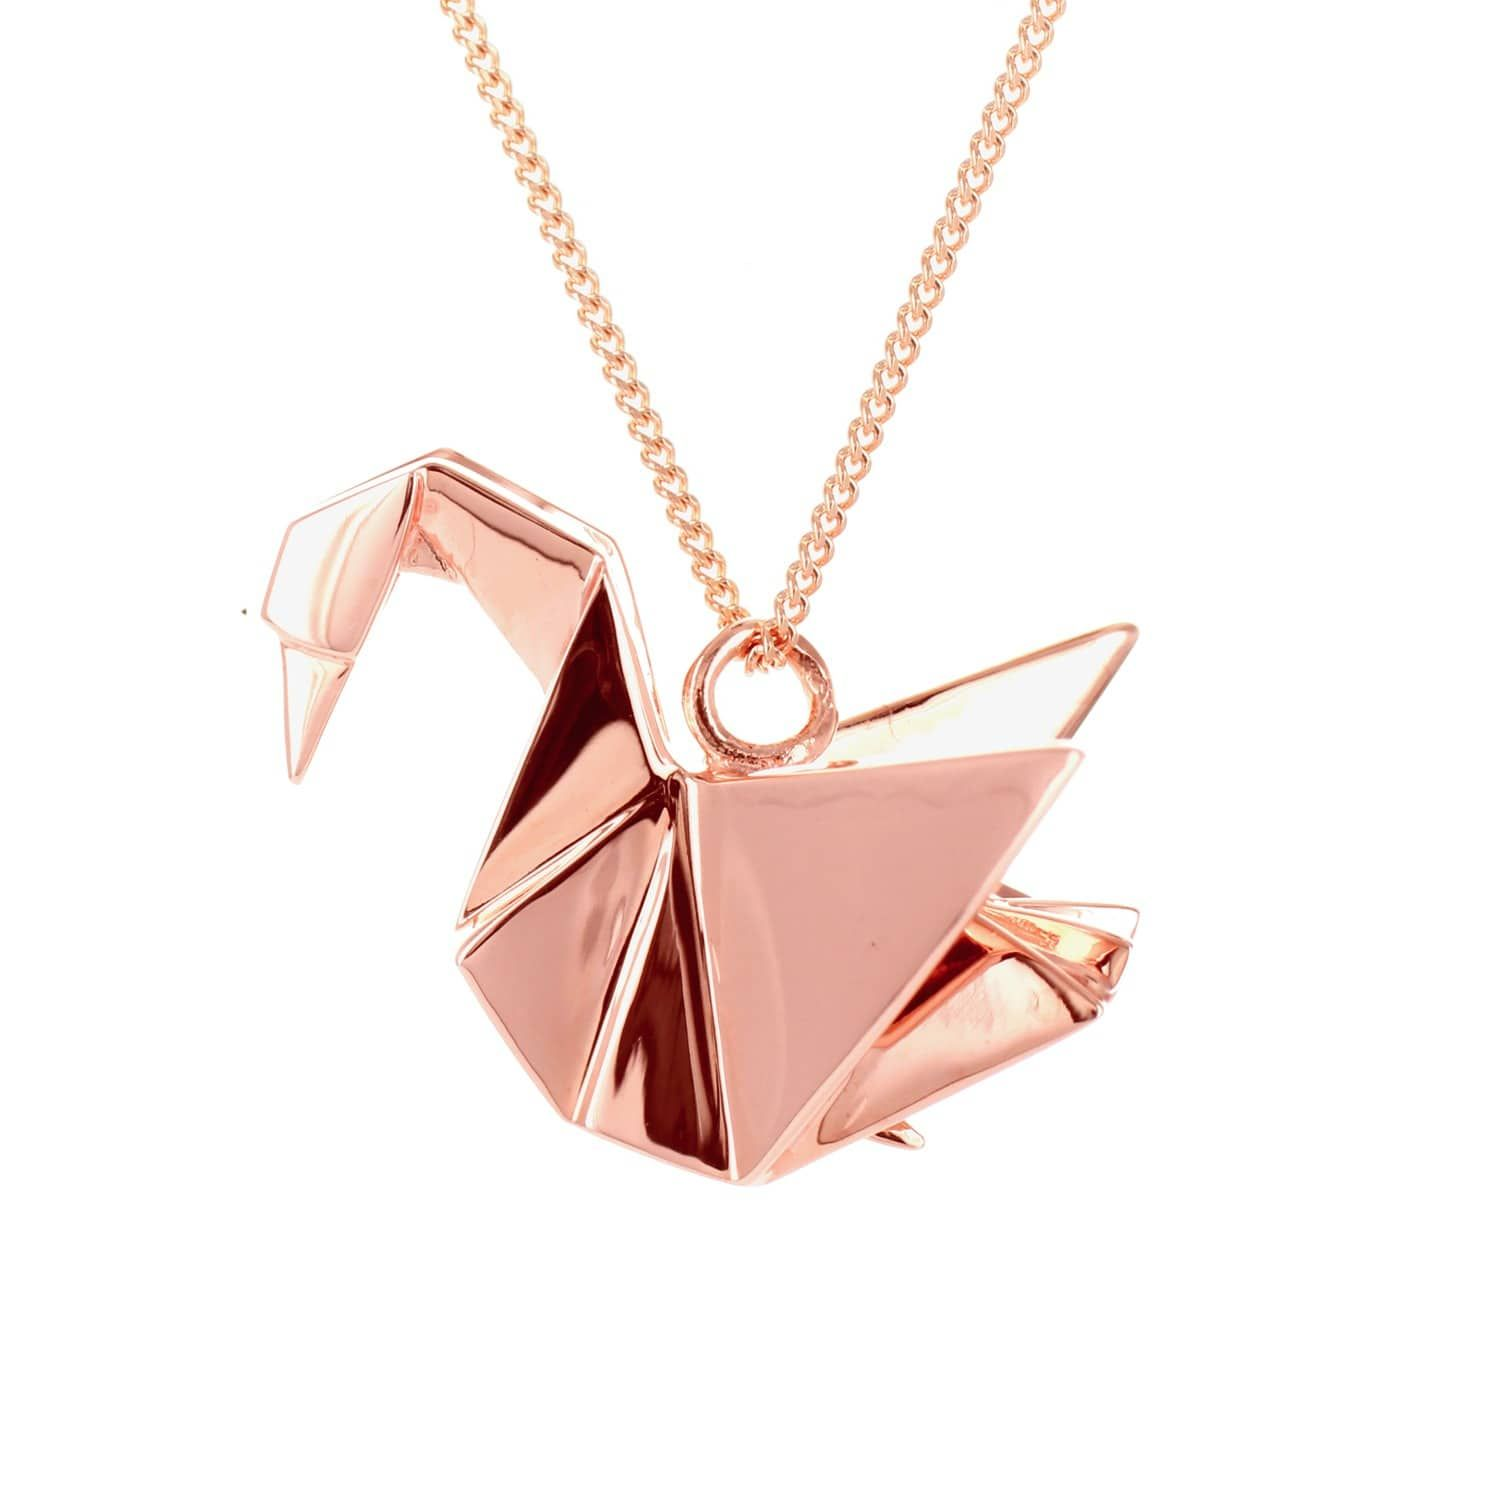 Swan necklace sterling silver pink gold plated origami jewelry swan necklace sterling silver pink gold plated by origami jewellery aloadofball Images